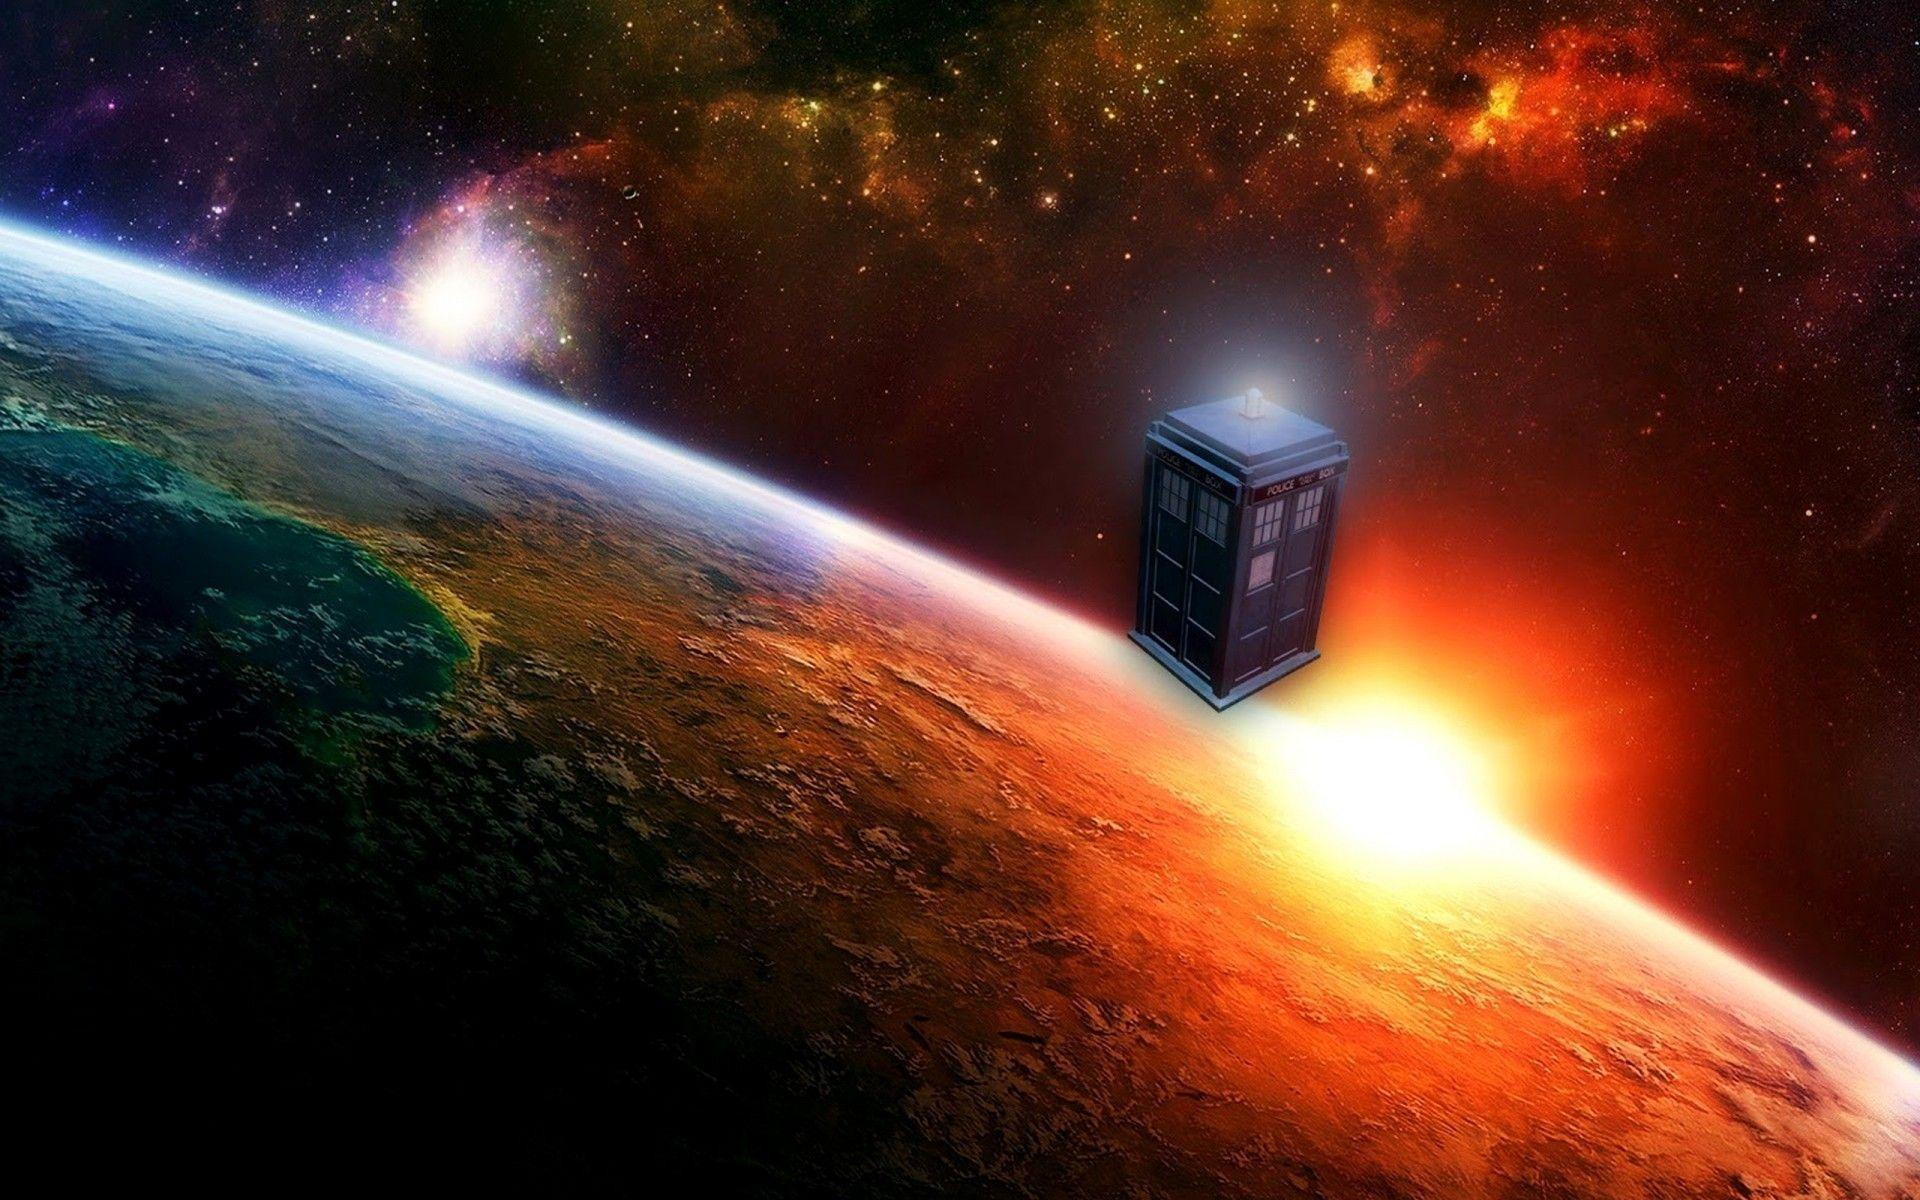 Doctor Who Wallpaper For Android Phone 1920x1200PX